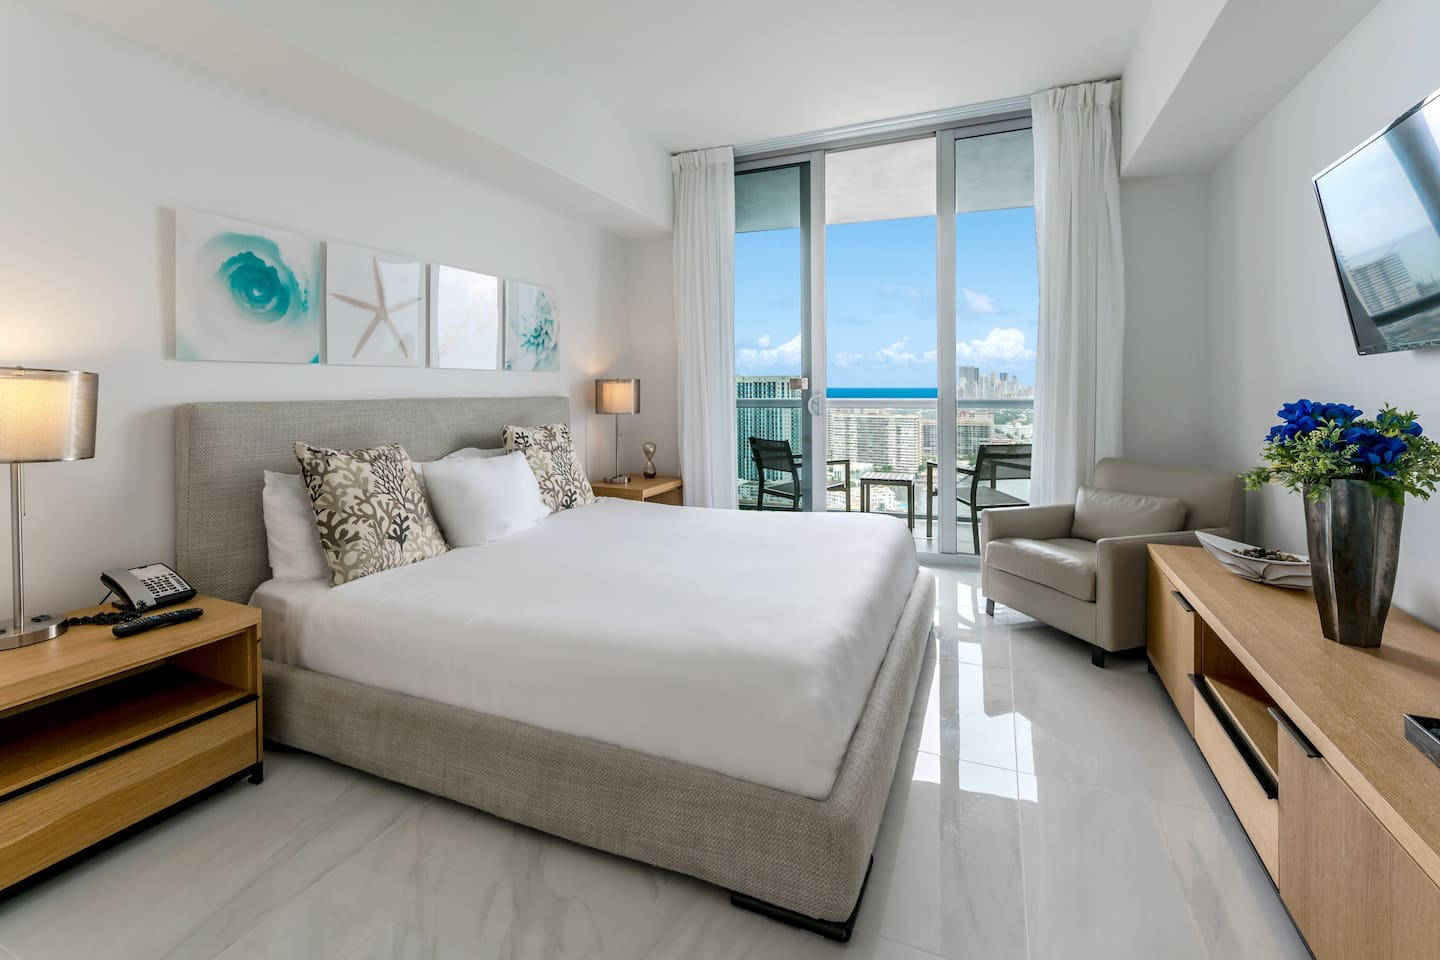 This the Luxurious Master bedroom of our two-Bedroom Apartment. It comes with a King size bed and marble floors. It also includes LED TV, marble floor balcony and walk-in closet. And how to forget the amazing views!